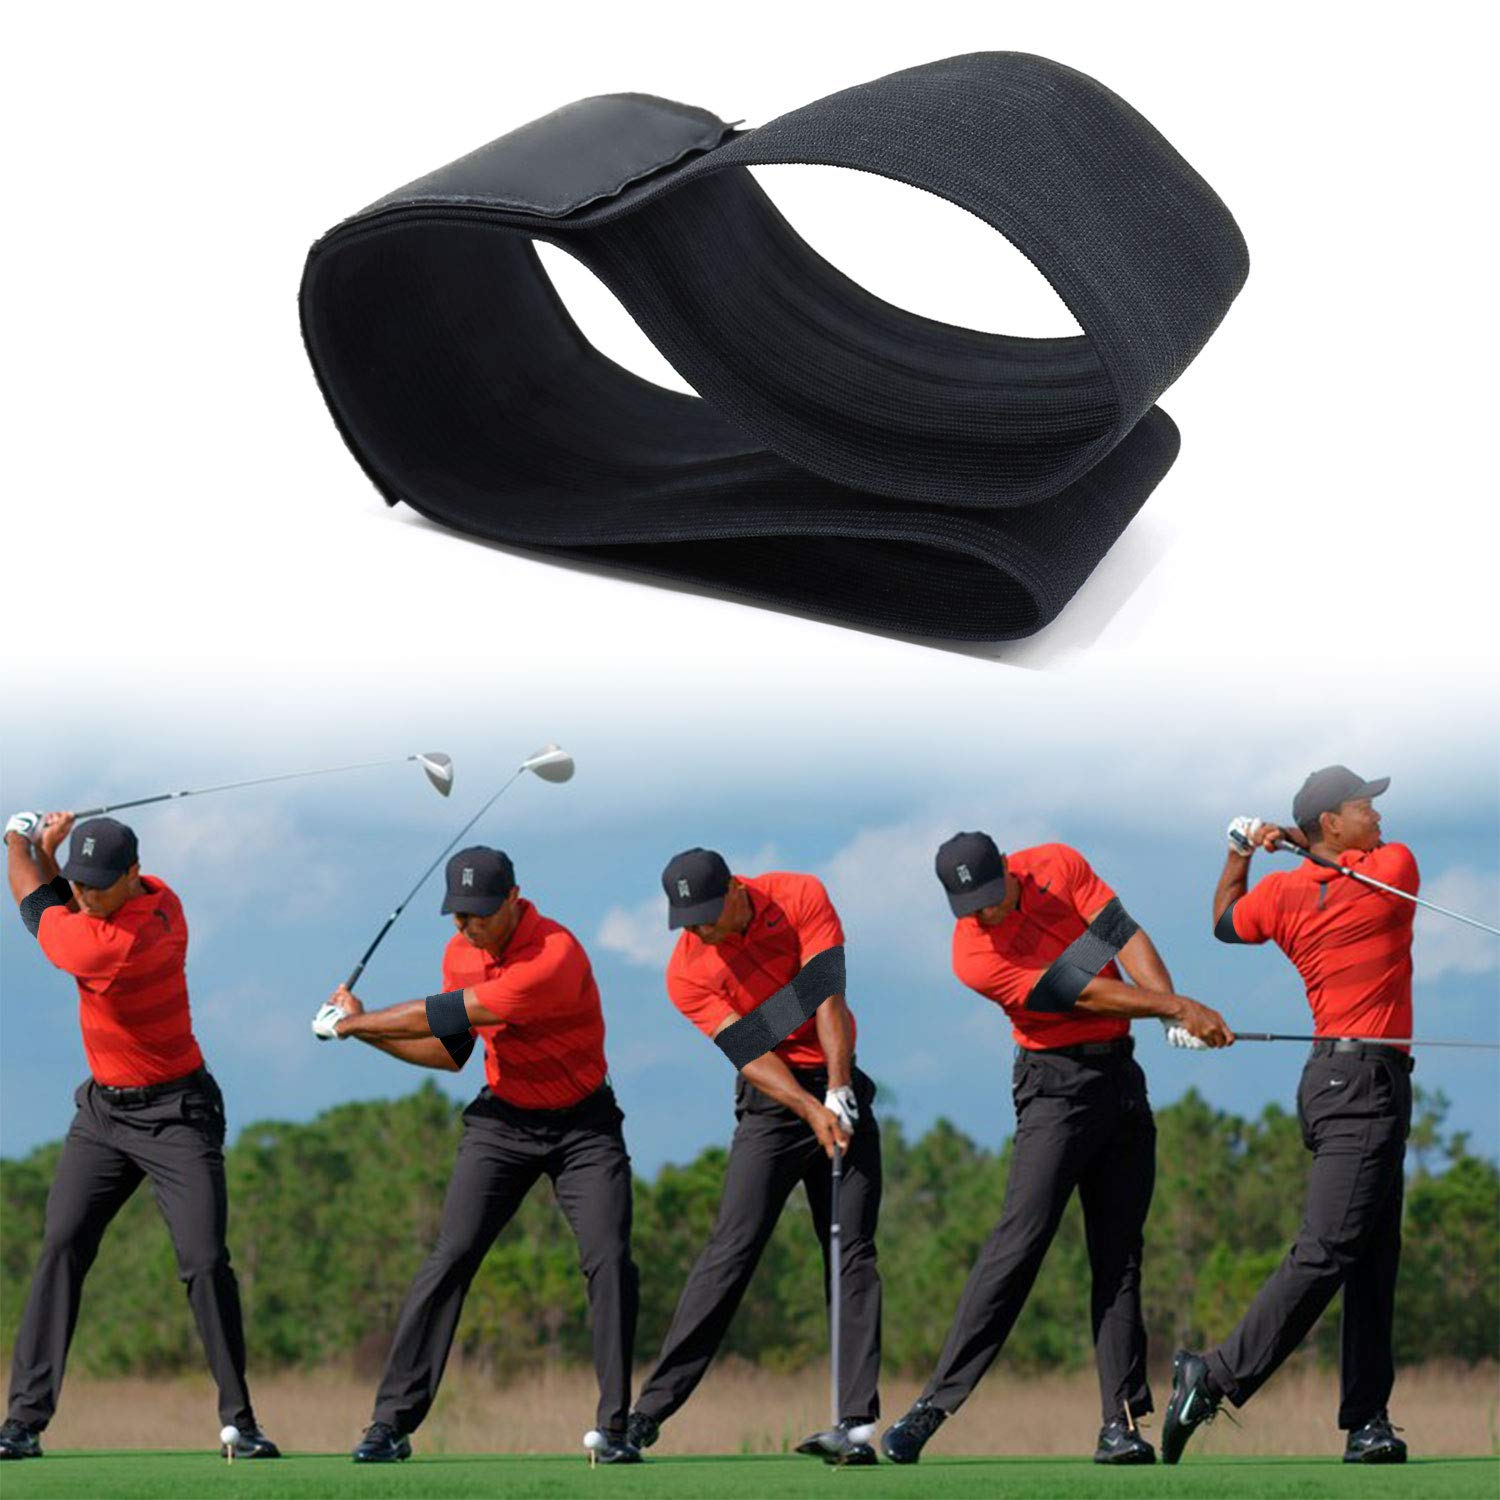 Prowithlin Golf Training Aids Golf Smooth Swing Training Aid Arm Band Golf Beginners Training Arm Band